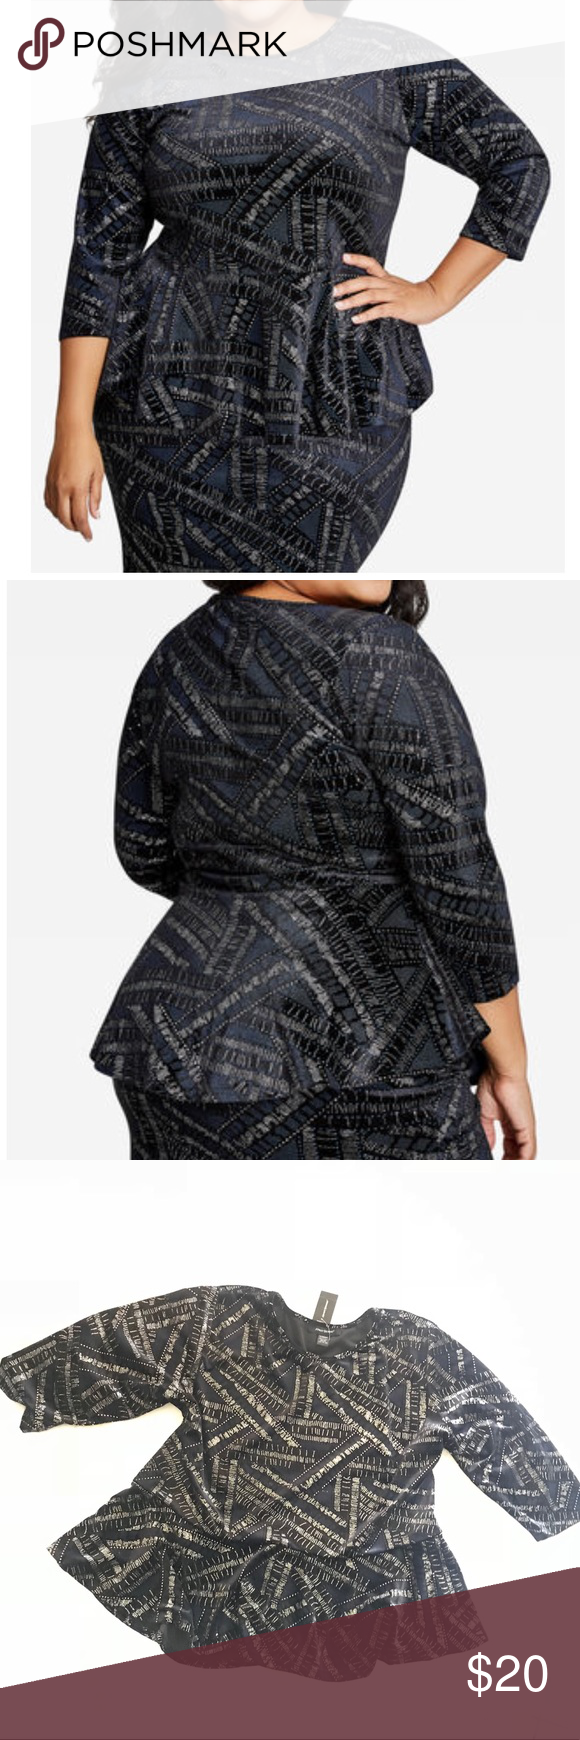 cca99445d0afe New ASHLEY STEWART VELVET GLITTER TOP Top only! Brand new with tags Ashley  Stewart top